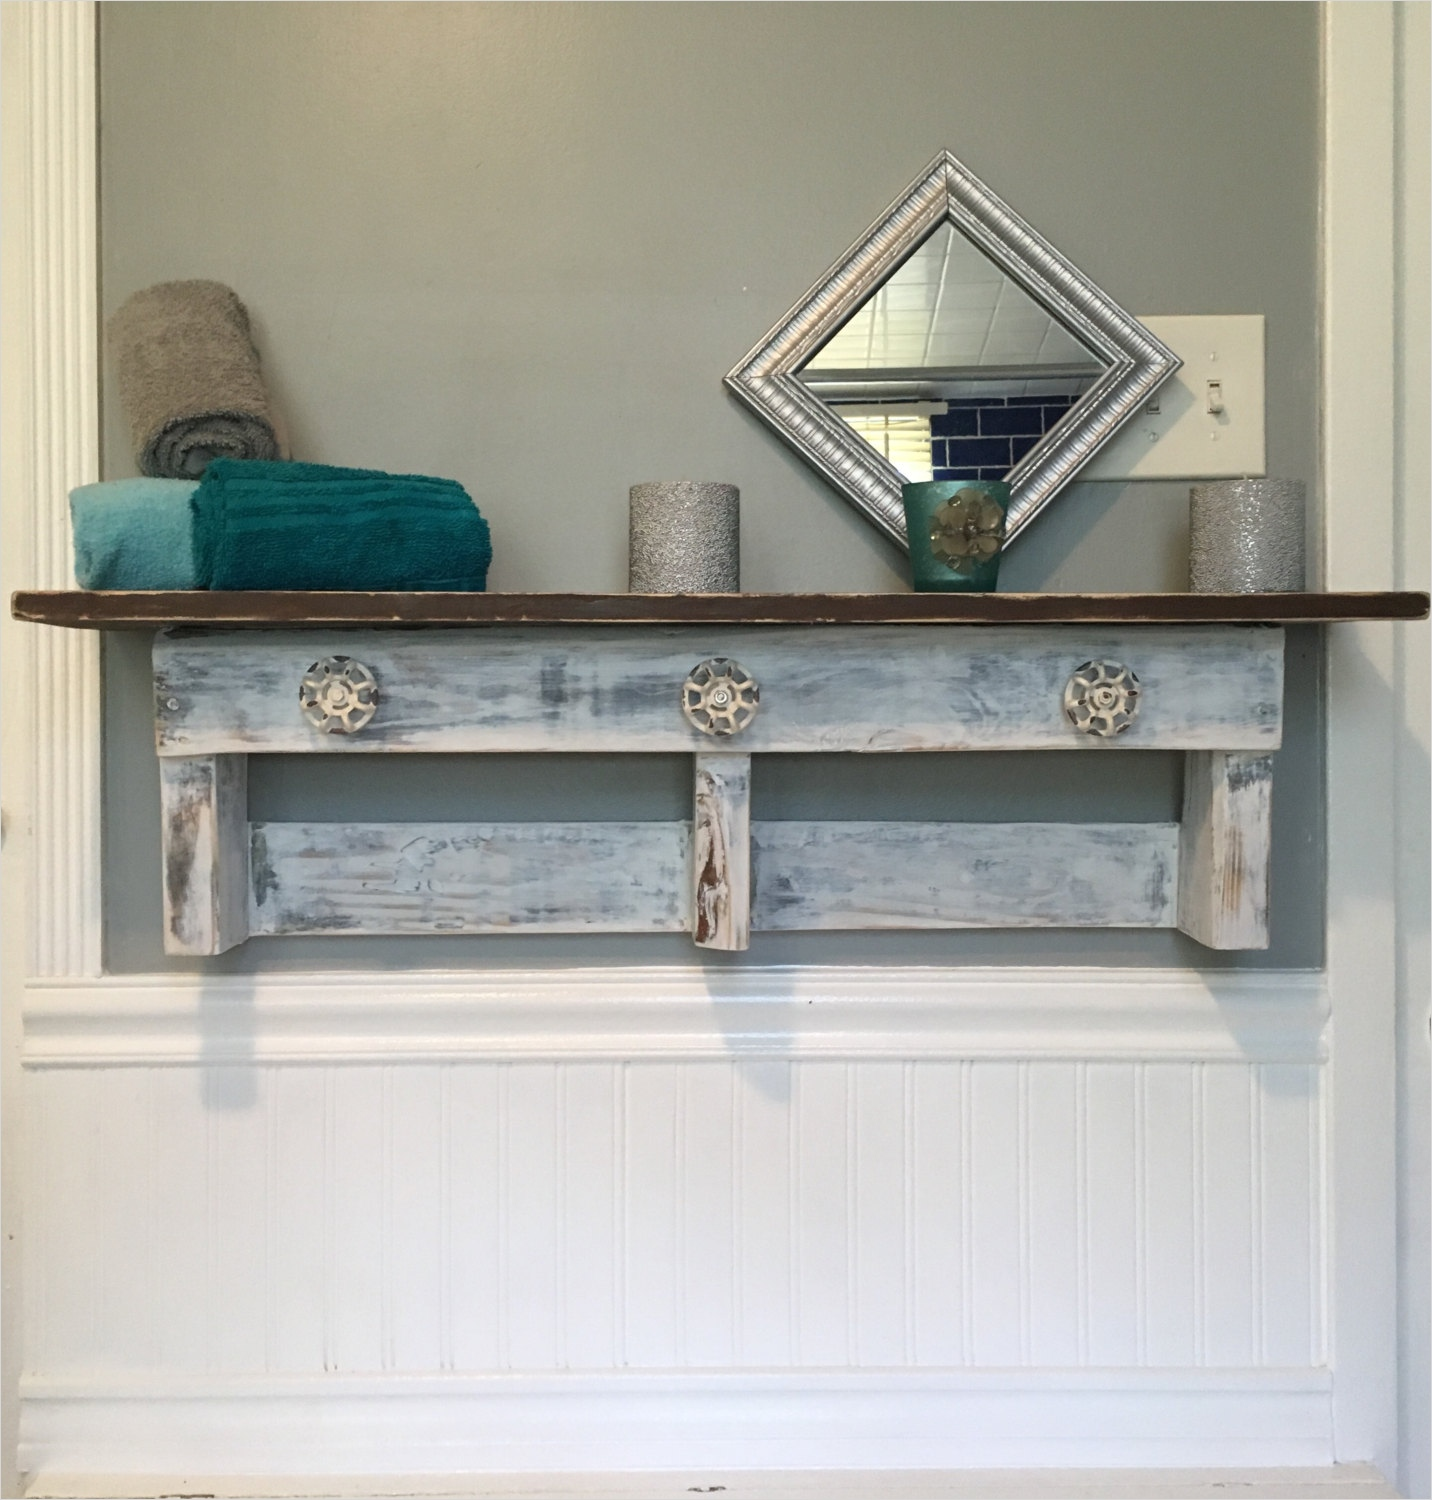 44 Creative Ideas Rustic Bathroom Walls Shelf 73 Handcrafted Farmhouse Bathroom Shelf Rustic Reclaimed Pallet Wood Shelf Bathroom Farmhouse Style 6